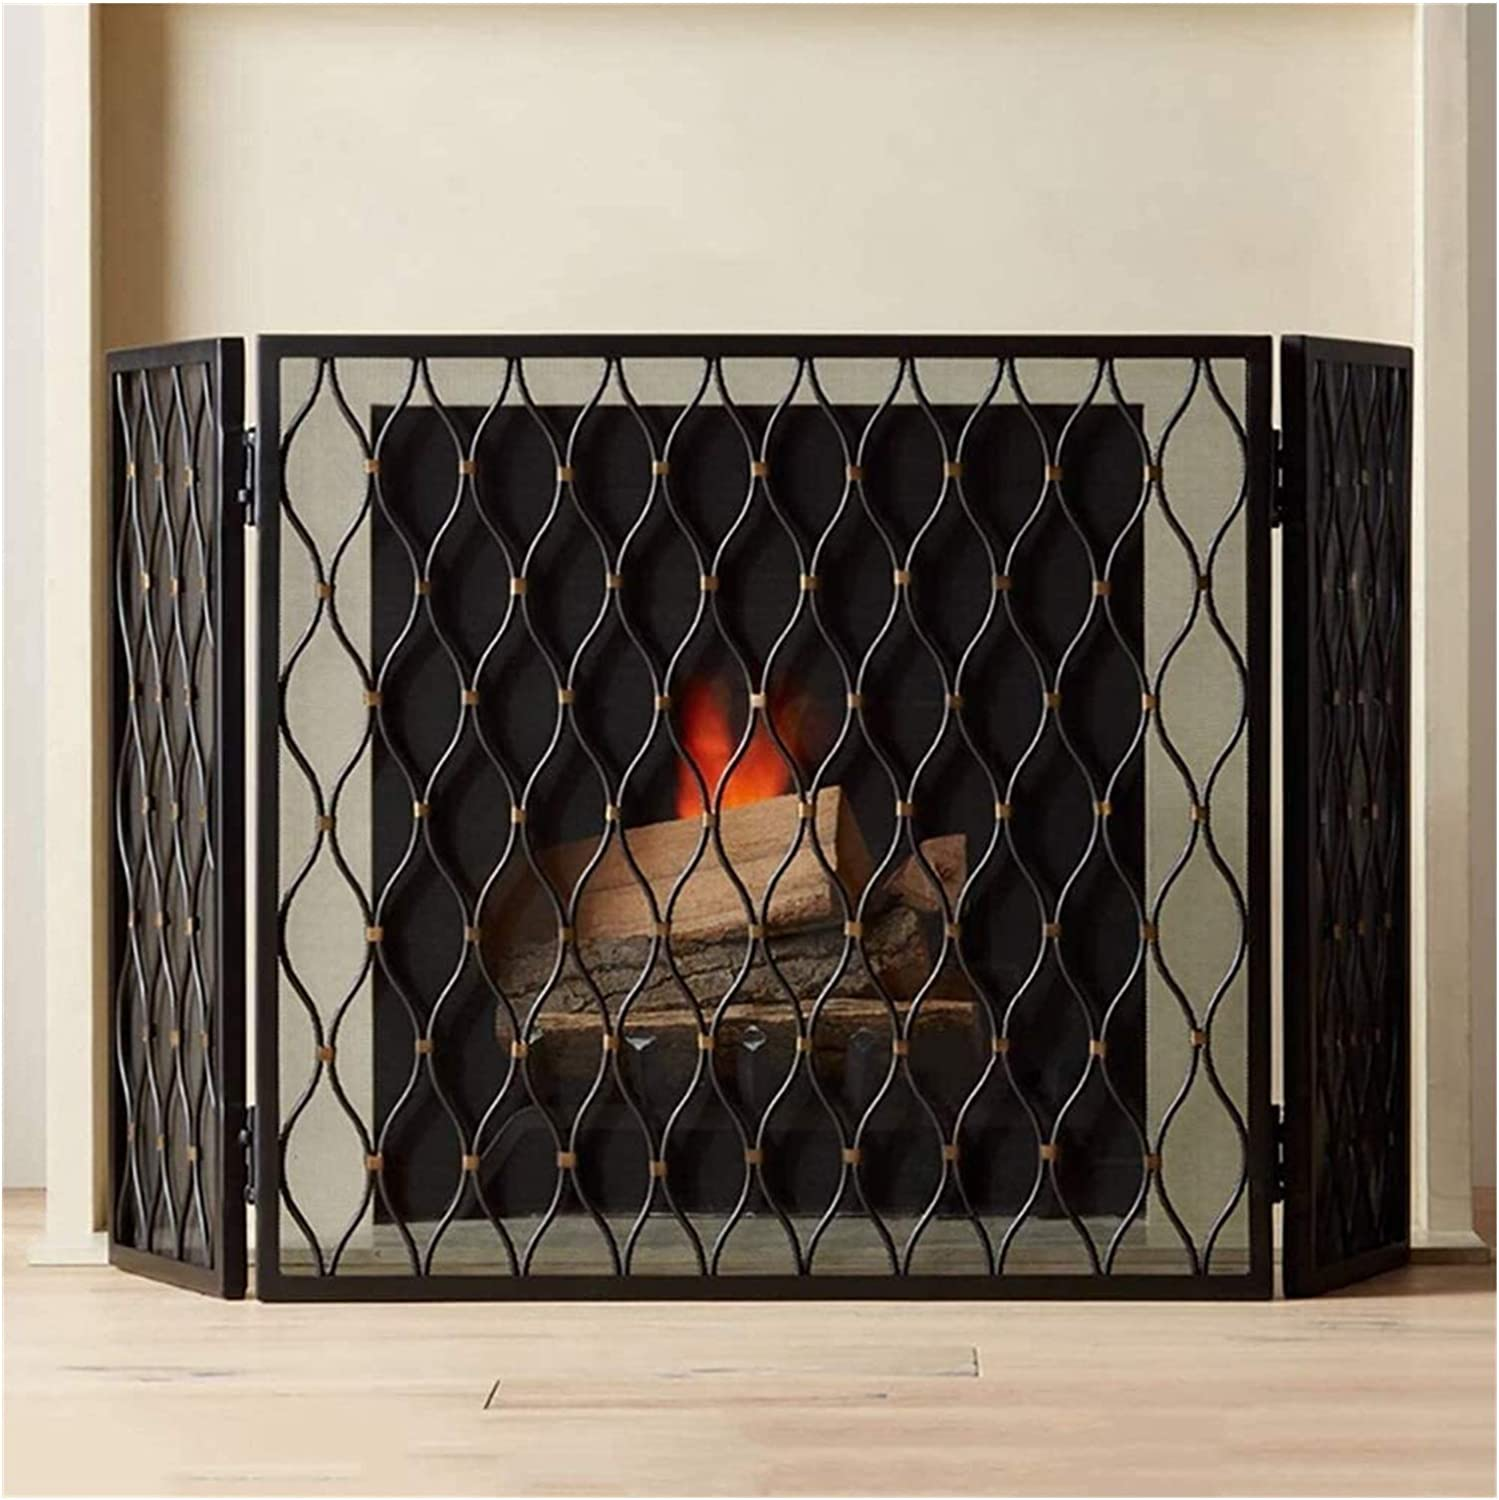 WANGLX Limited price sale Indoor Fireplace Screen Decor Finally popular brand Place Fence Fire